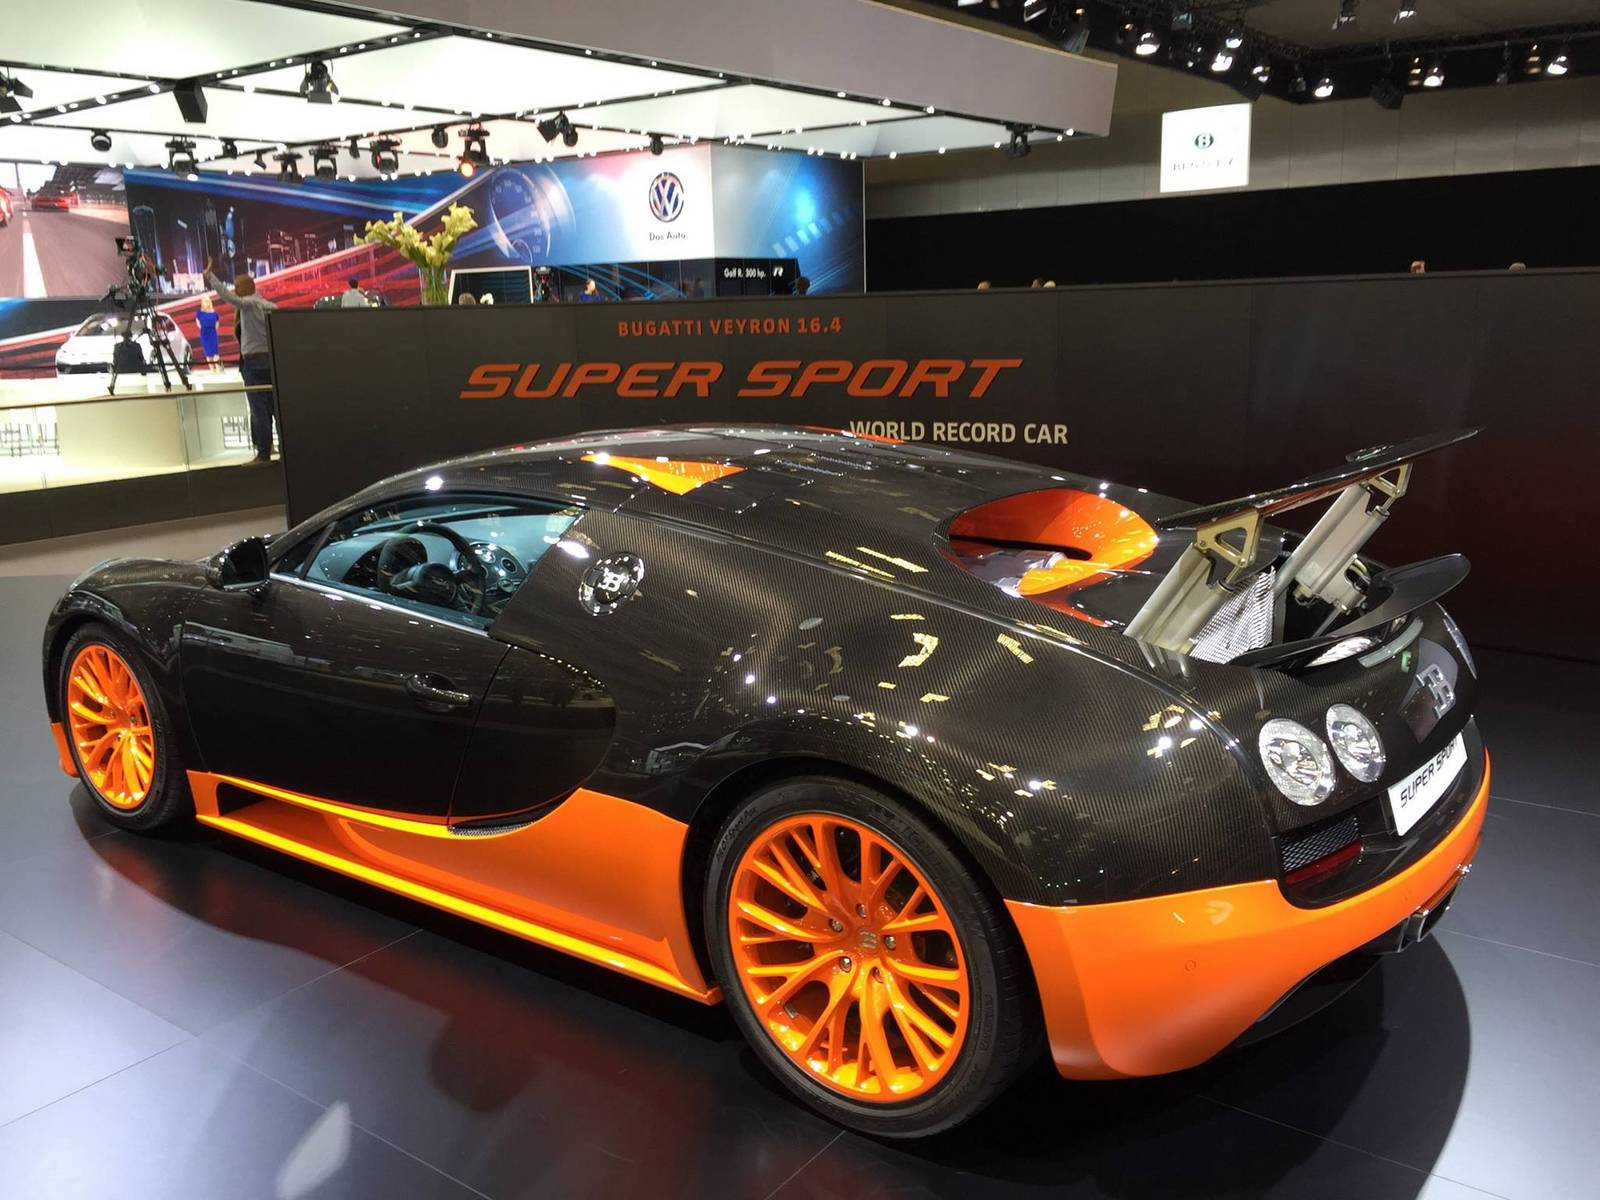 bugatti veyron super sport wrc stars at qatar motor show gtspirit. Black Bedroom Furniture Sets. Home Design Ideas